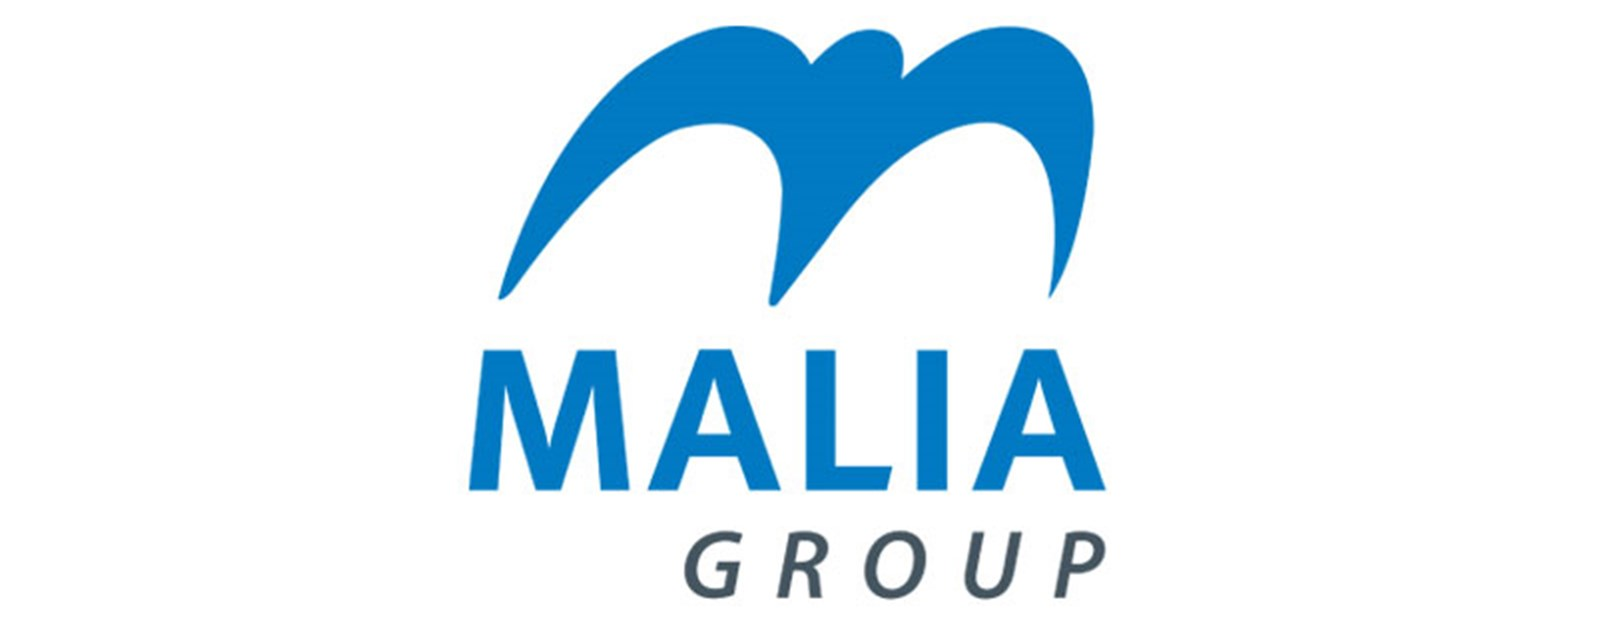 Contact us | Malia Group